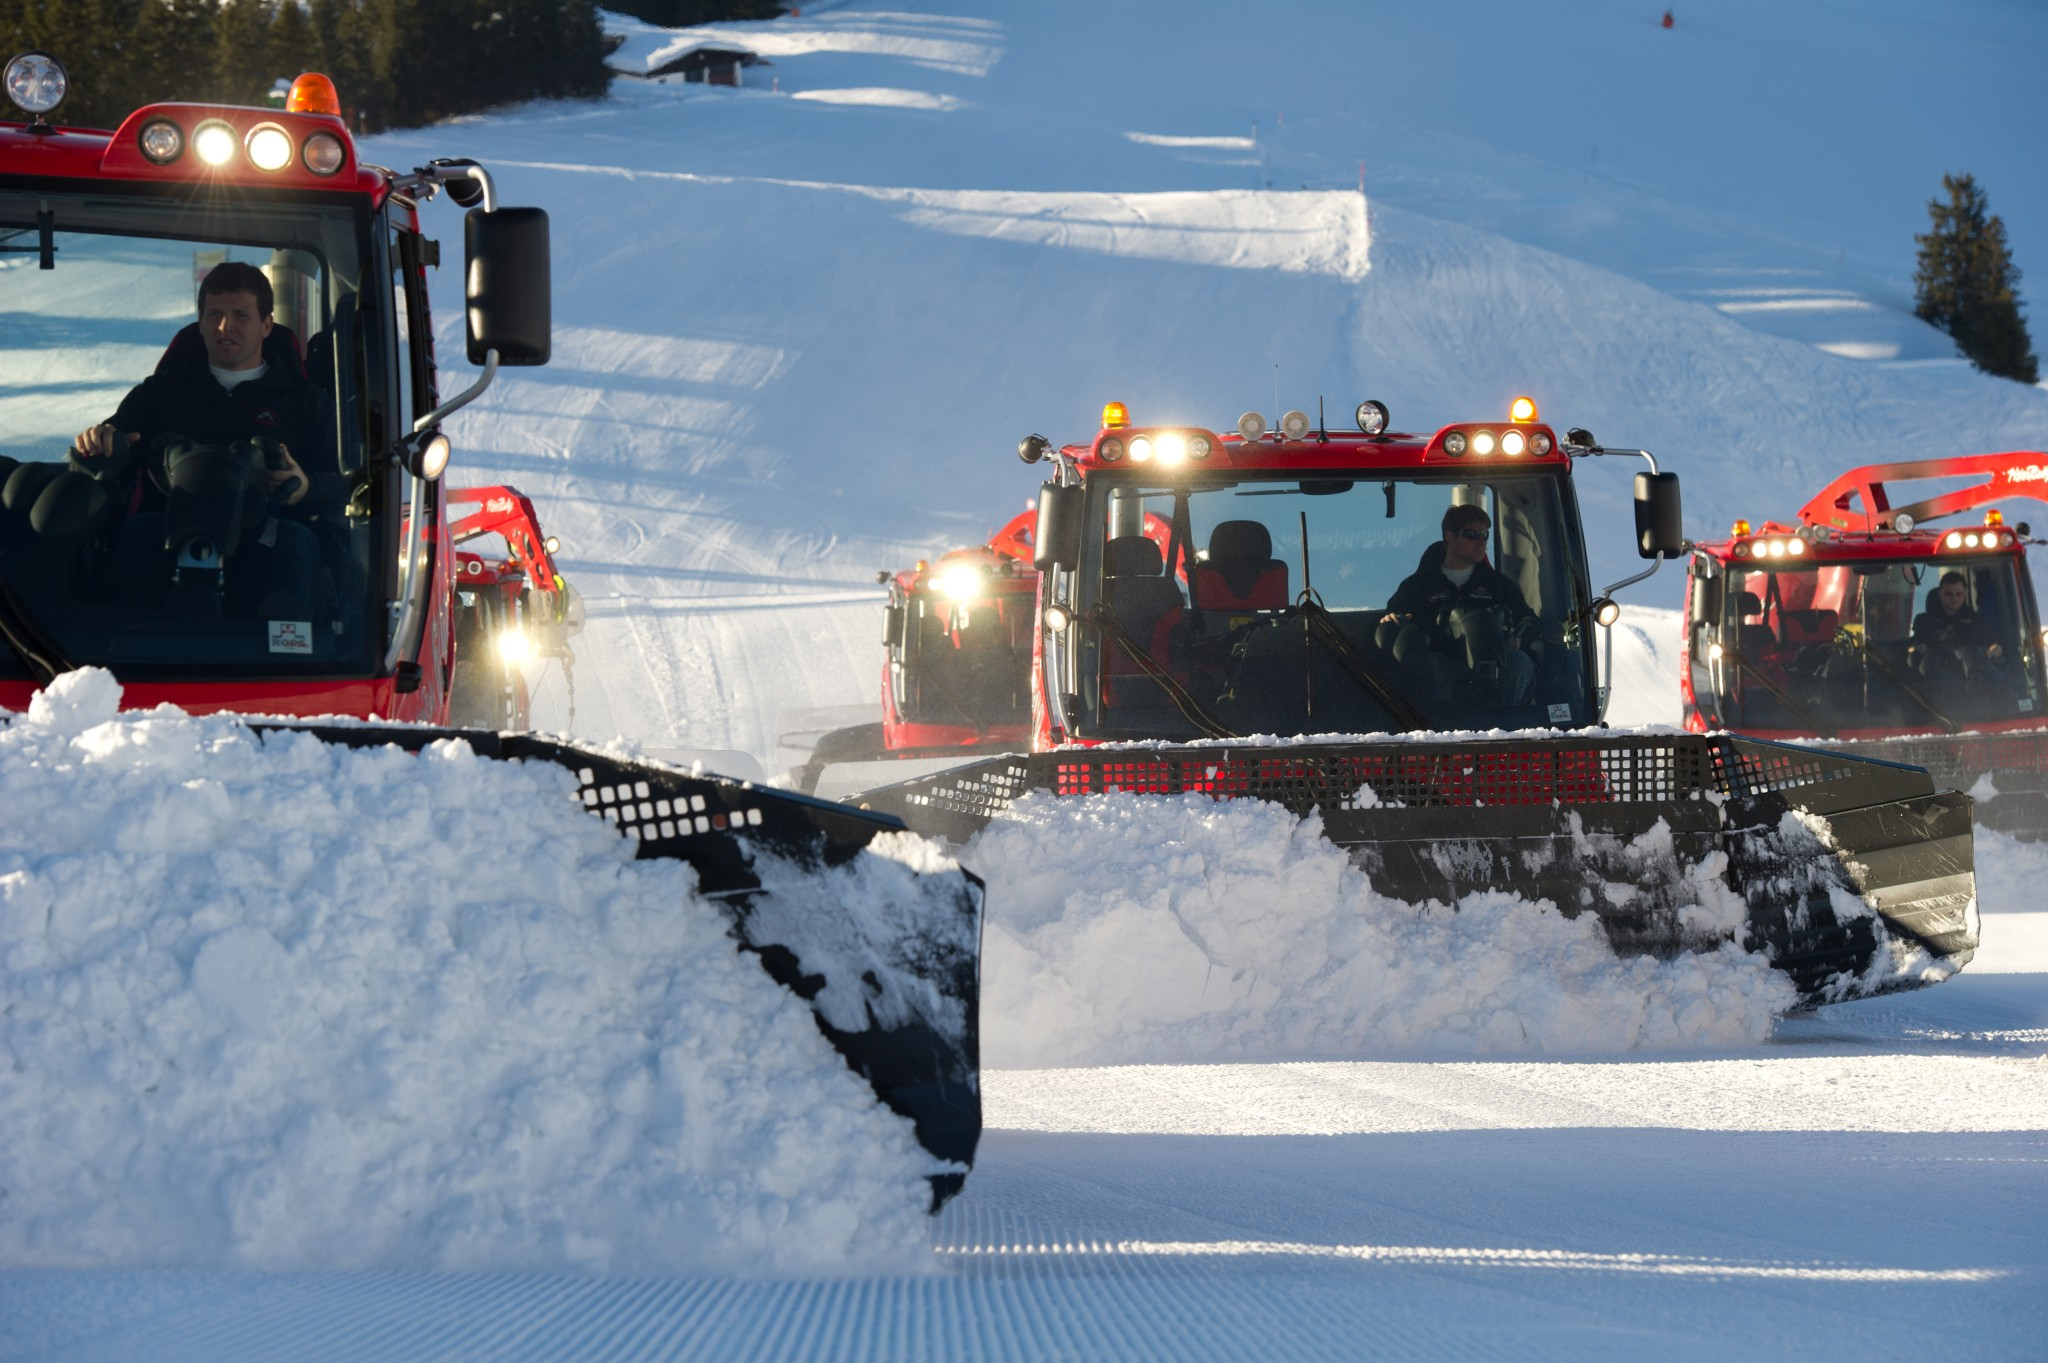 What A Difference A Day Makes CREDIT Kitzbuhel Bergbahnen (4)